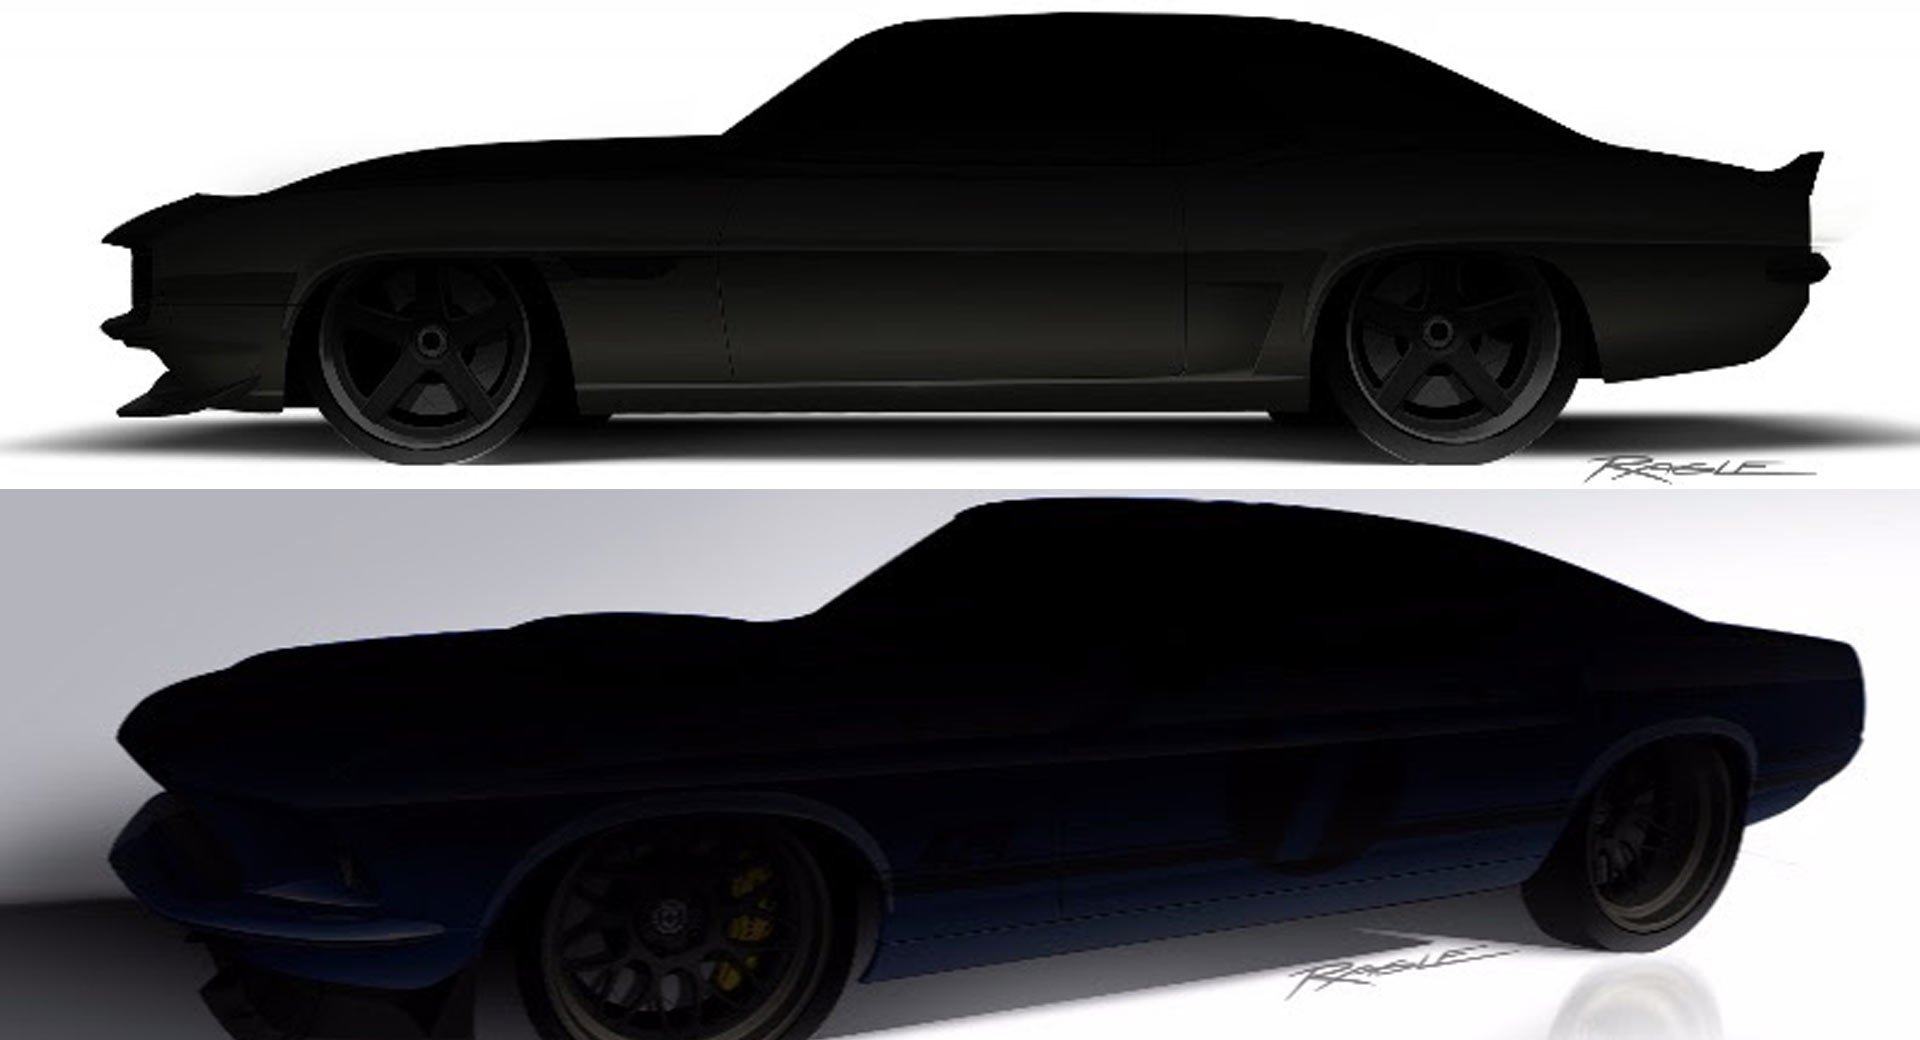 The classical car restoration crew over at Ringbrothers has finished working on a 1969 Chevrolet Camaro and Ford Mustang Mach 1. Both cars will be exhibited at this year's SEMA show in Las-Vegas. In the meantime, though, let us take a closer look.